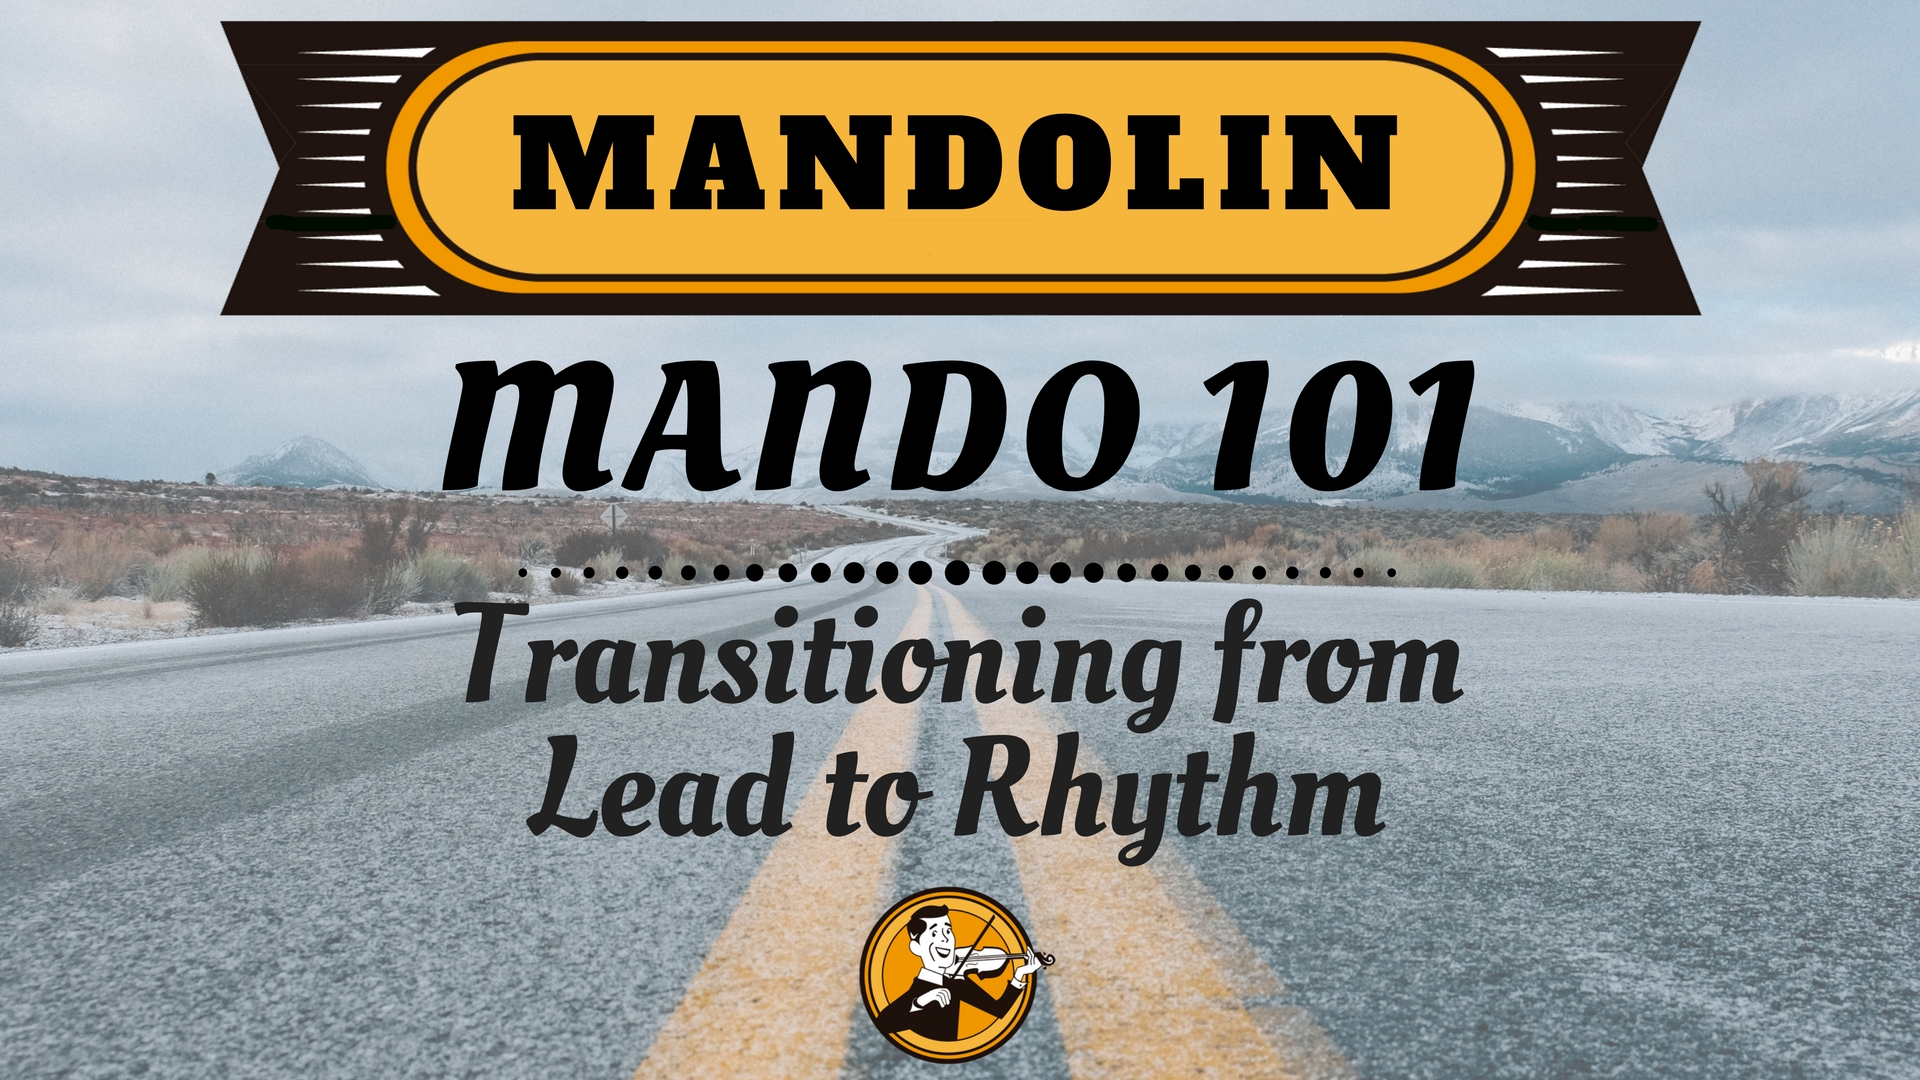 Mando 101 Transitioning from Lead to Rhythm (1)